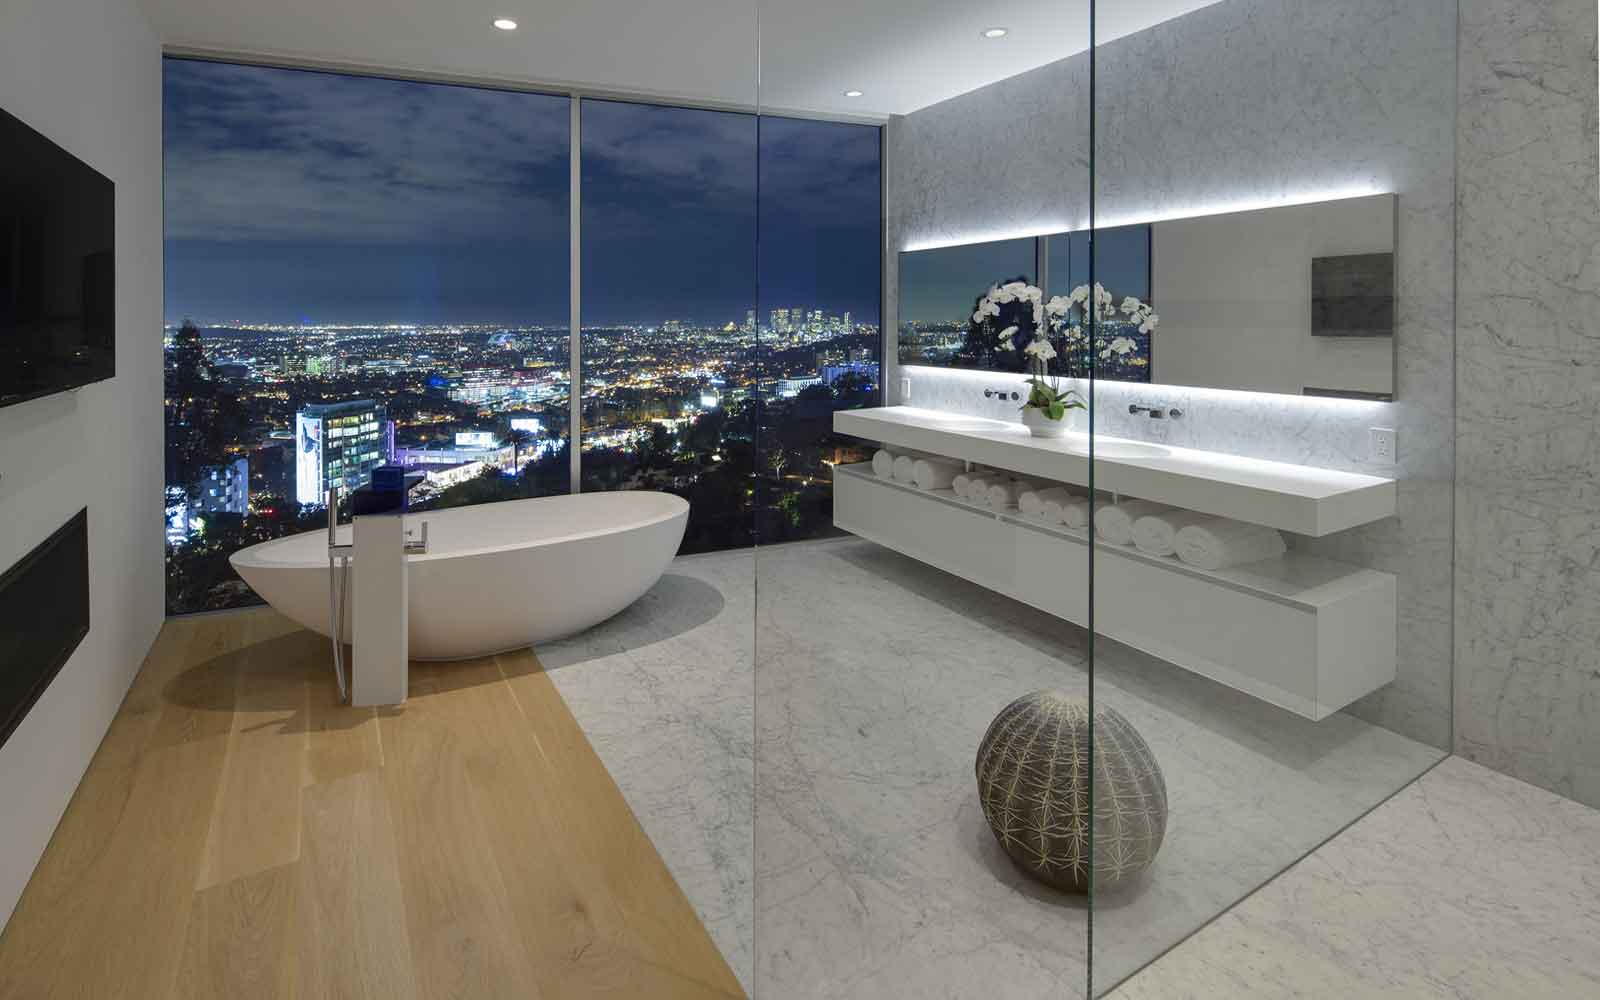 A room with a view. This dazzling contemporary home on Sunset Strip boasts an array of stellar features, but the star attraction is a spa-like master bathroom overlooking the City of Angels.